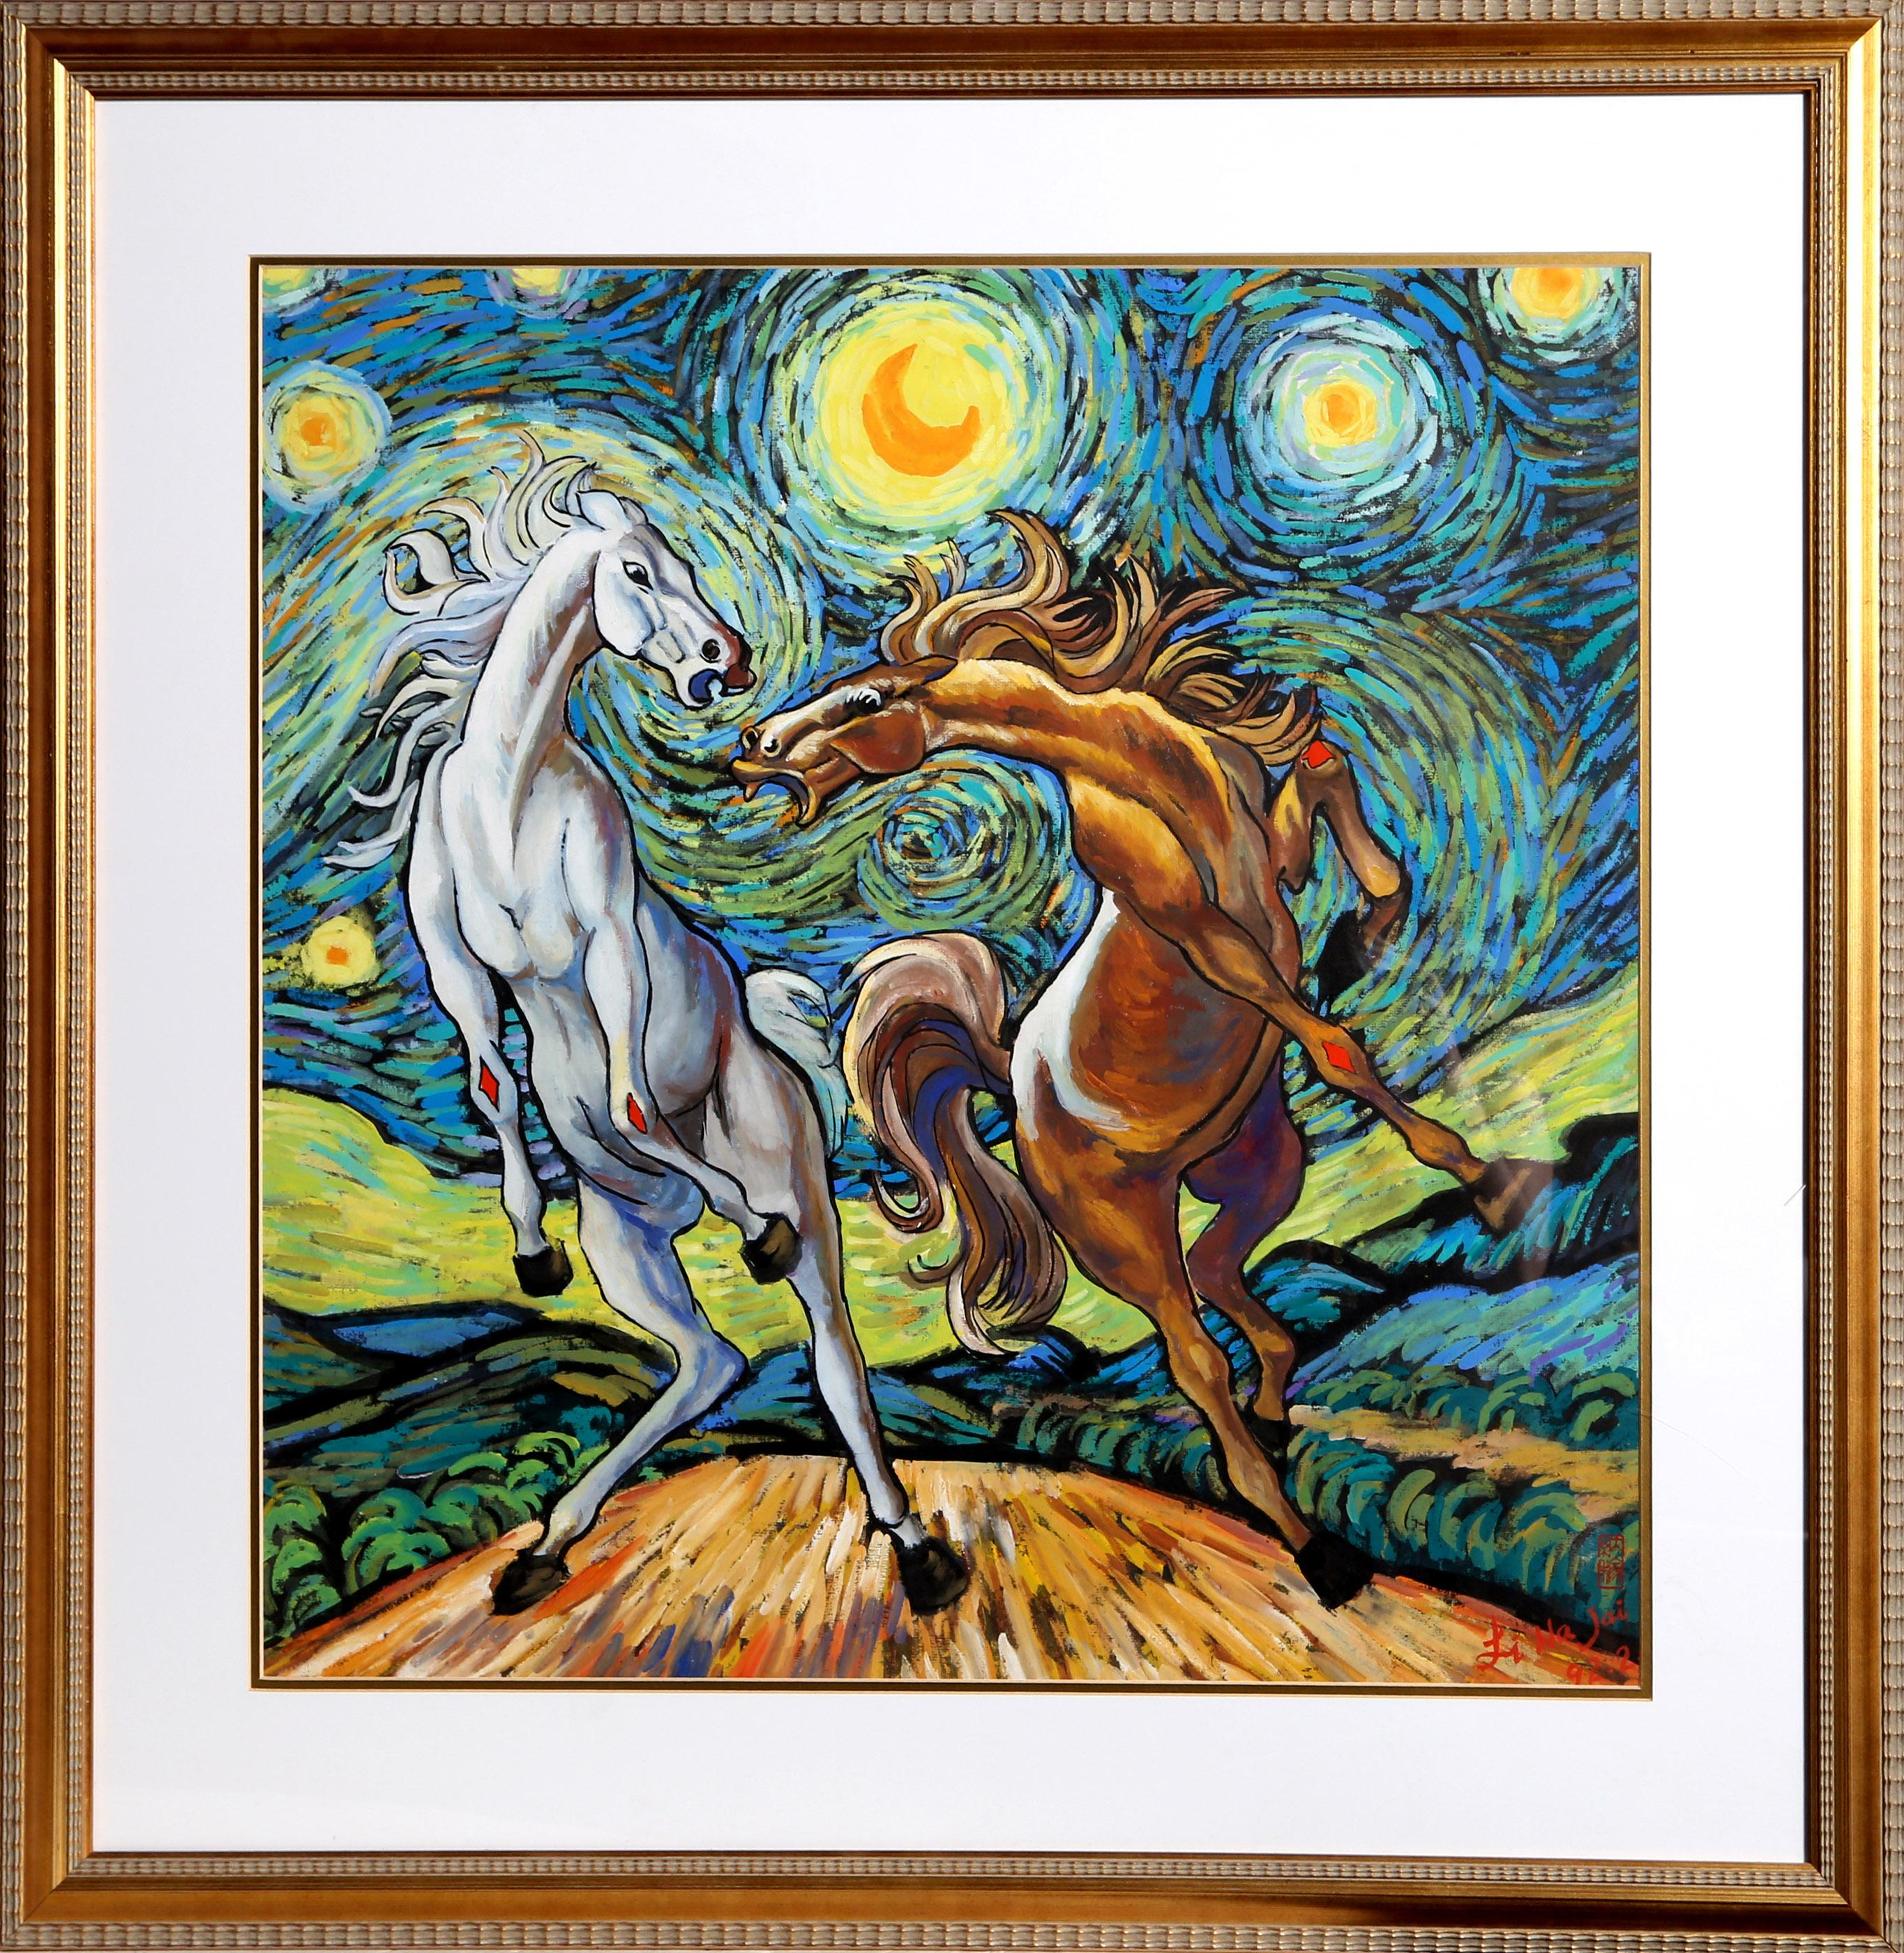 Li Na Jai, Starry Night Ponies, Gouache Painting